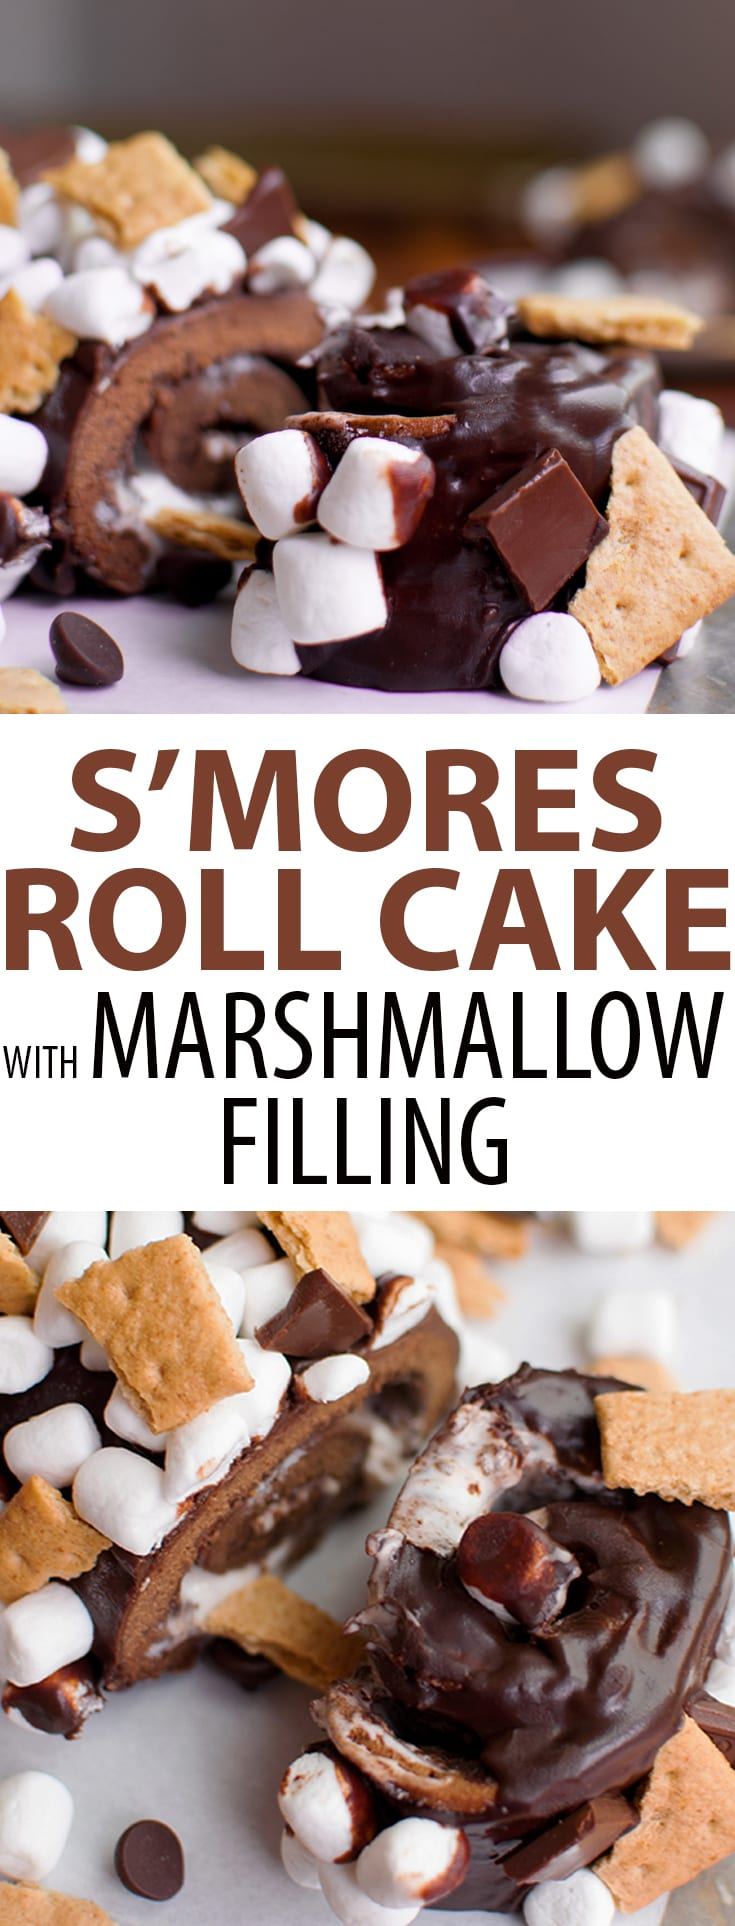 S'mores Cake with Chocolate Ganache, Marshmallow, and Graham Crackers